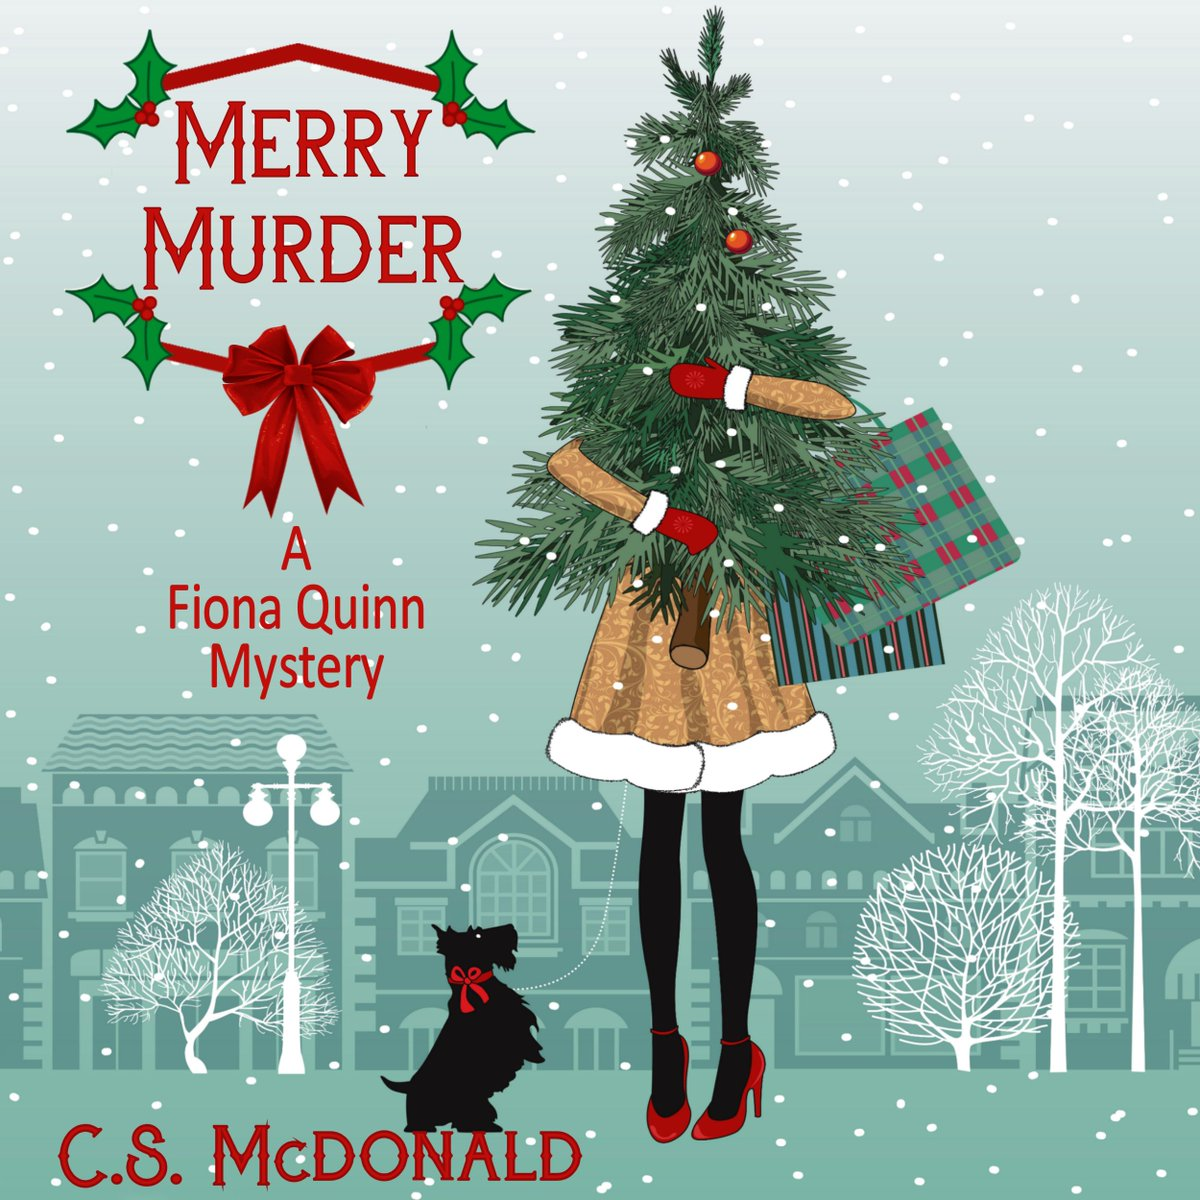 Chilly weather-#cozymystery MERRY MURDER #99cents KU  http:// amzn.to/2cslkJK  &nbsp;   #Audible too&gt;  http:// adbl.co/2tStFCF  &nbsp;   #listen #mustread<br>http://pic.twitter.com/DyDzAeksPs